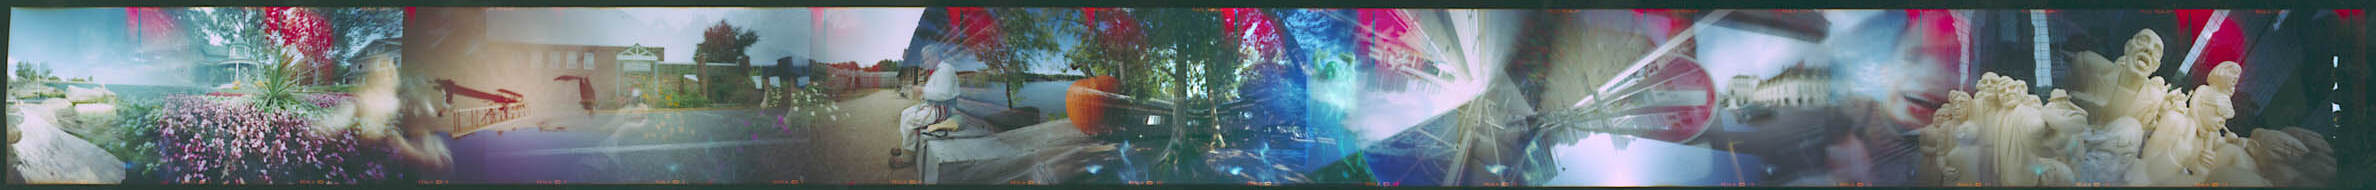 Sténopé © Flying Pinhole